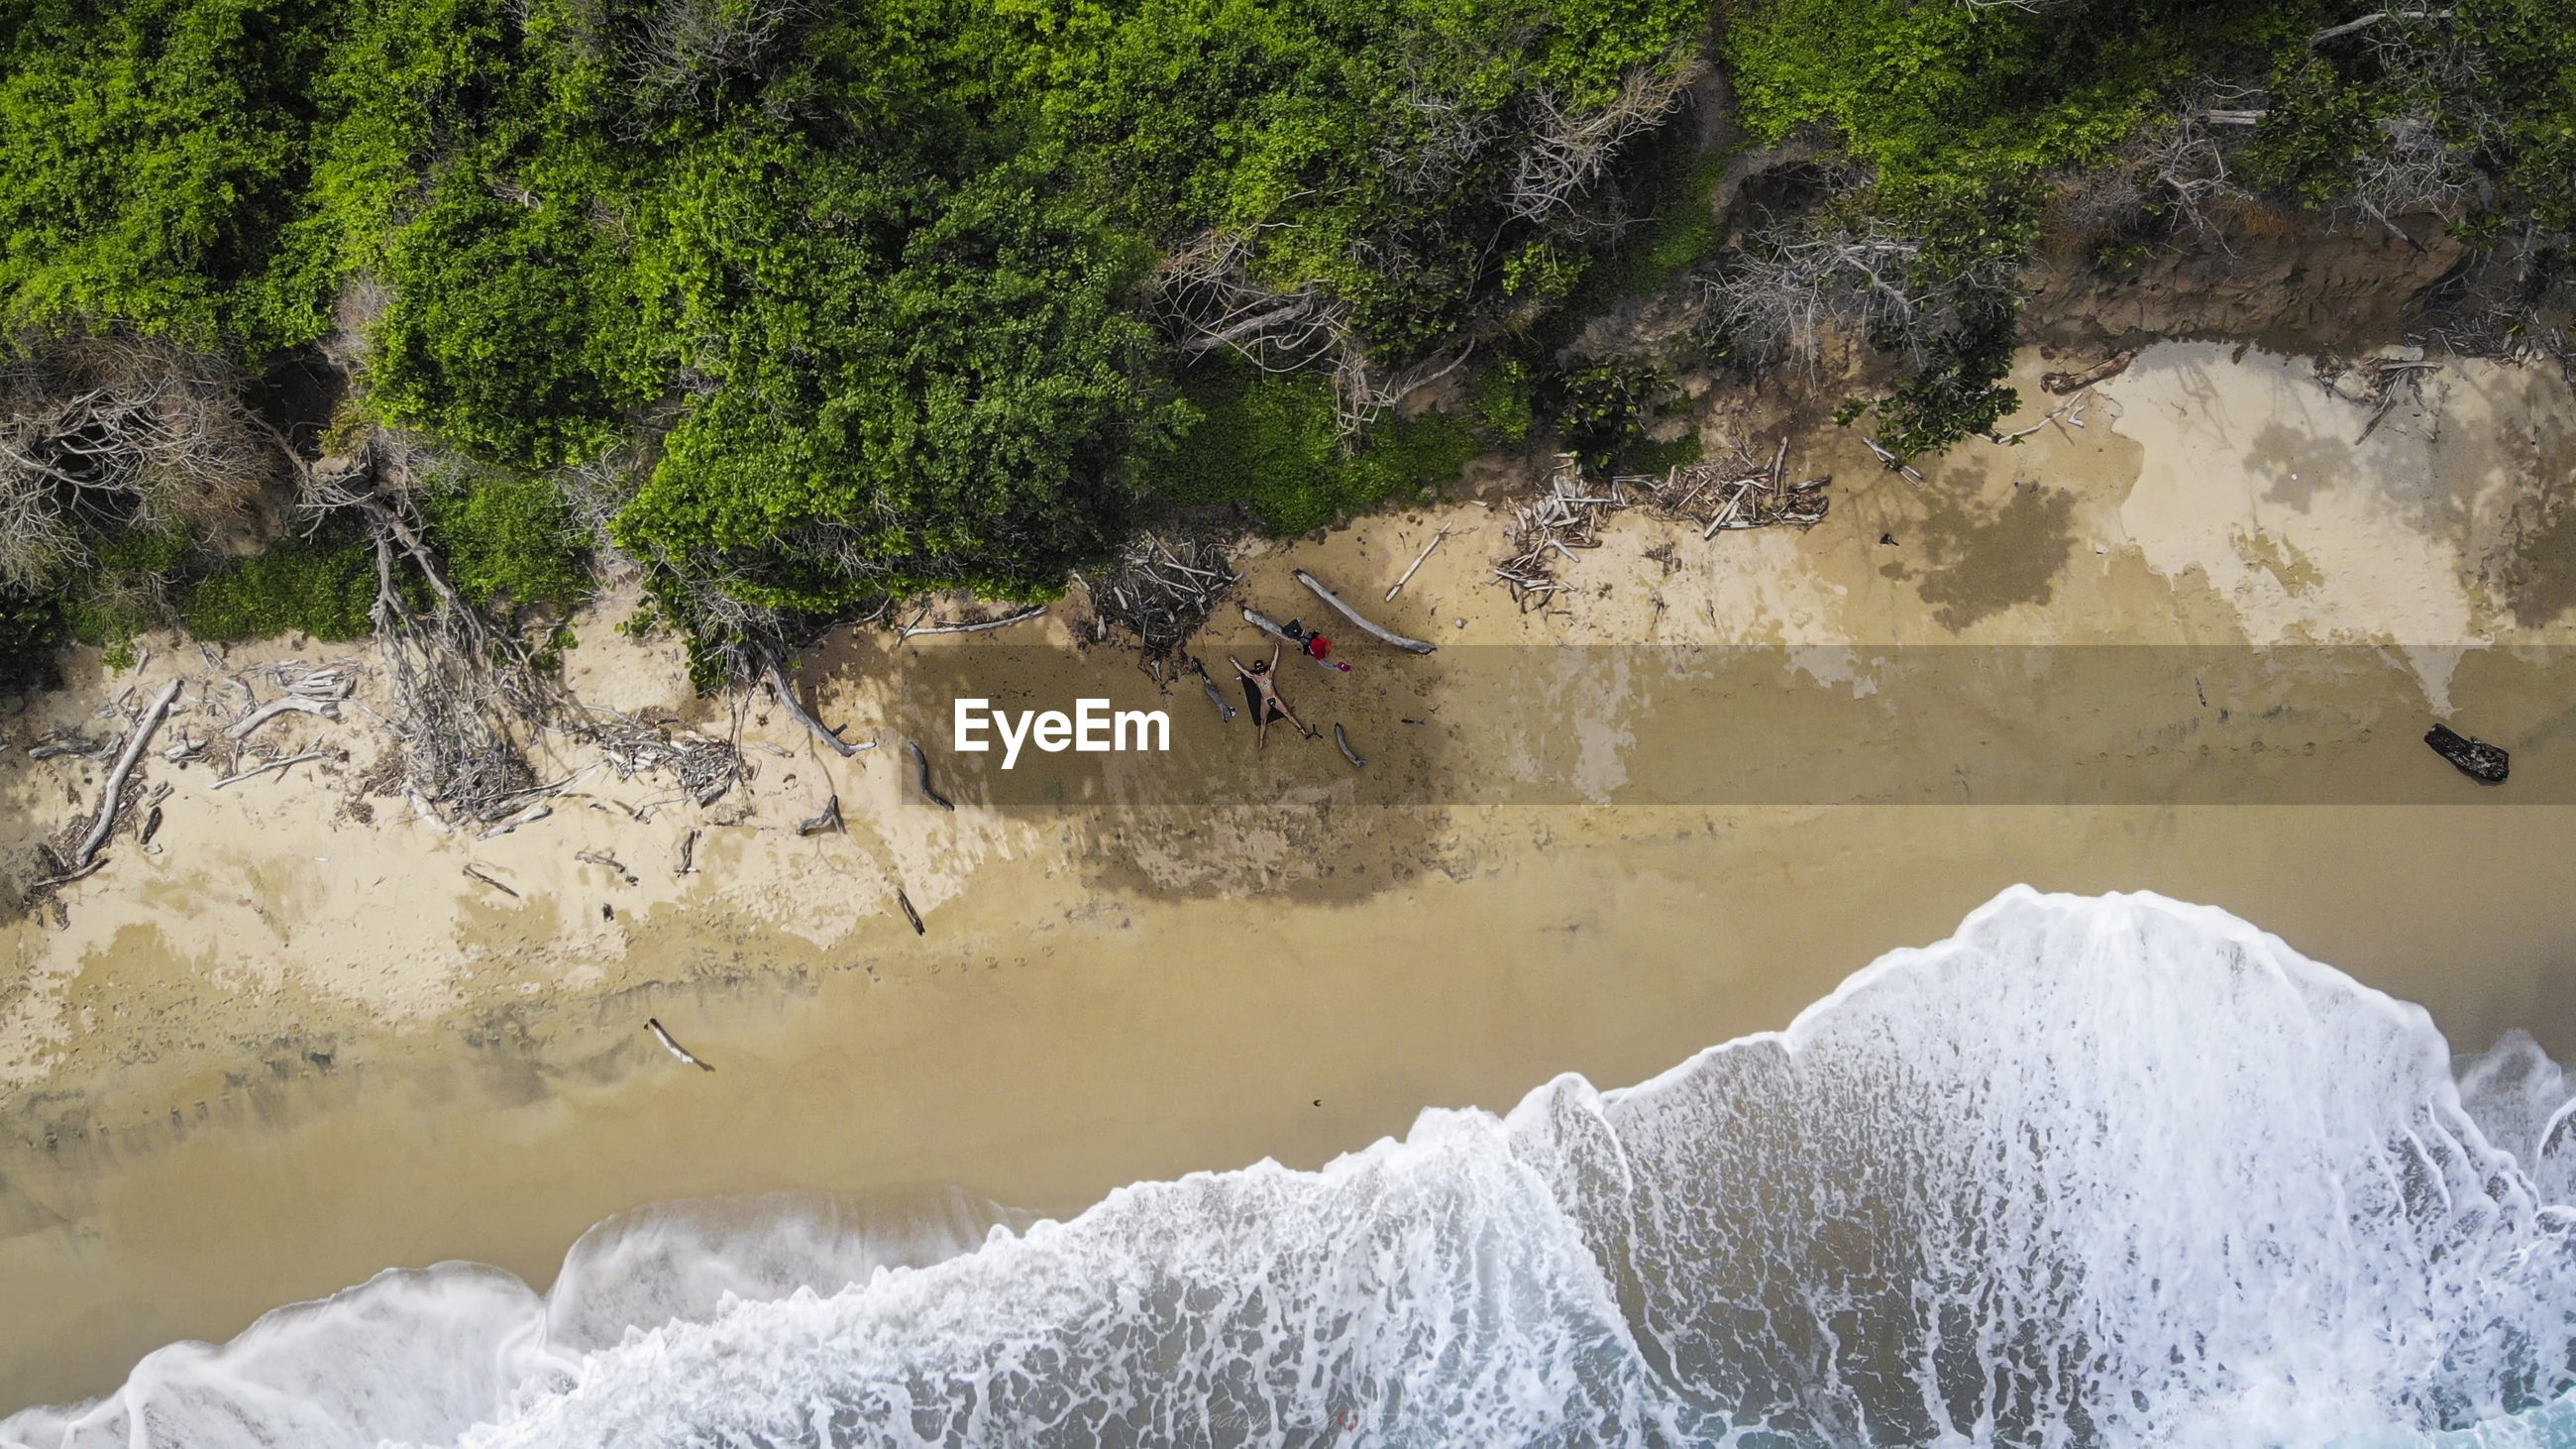 Aerial view of man lying on beach